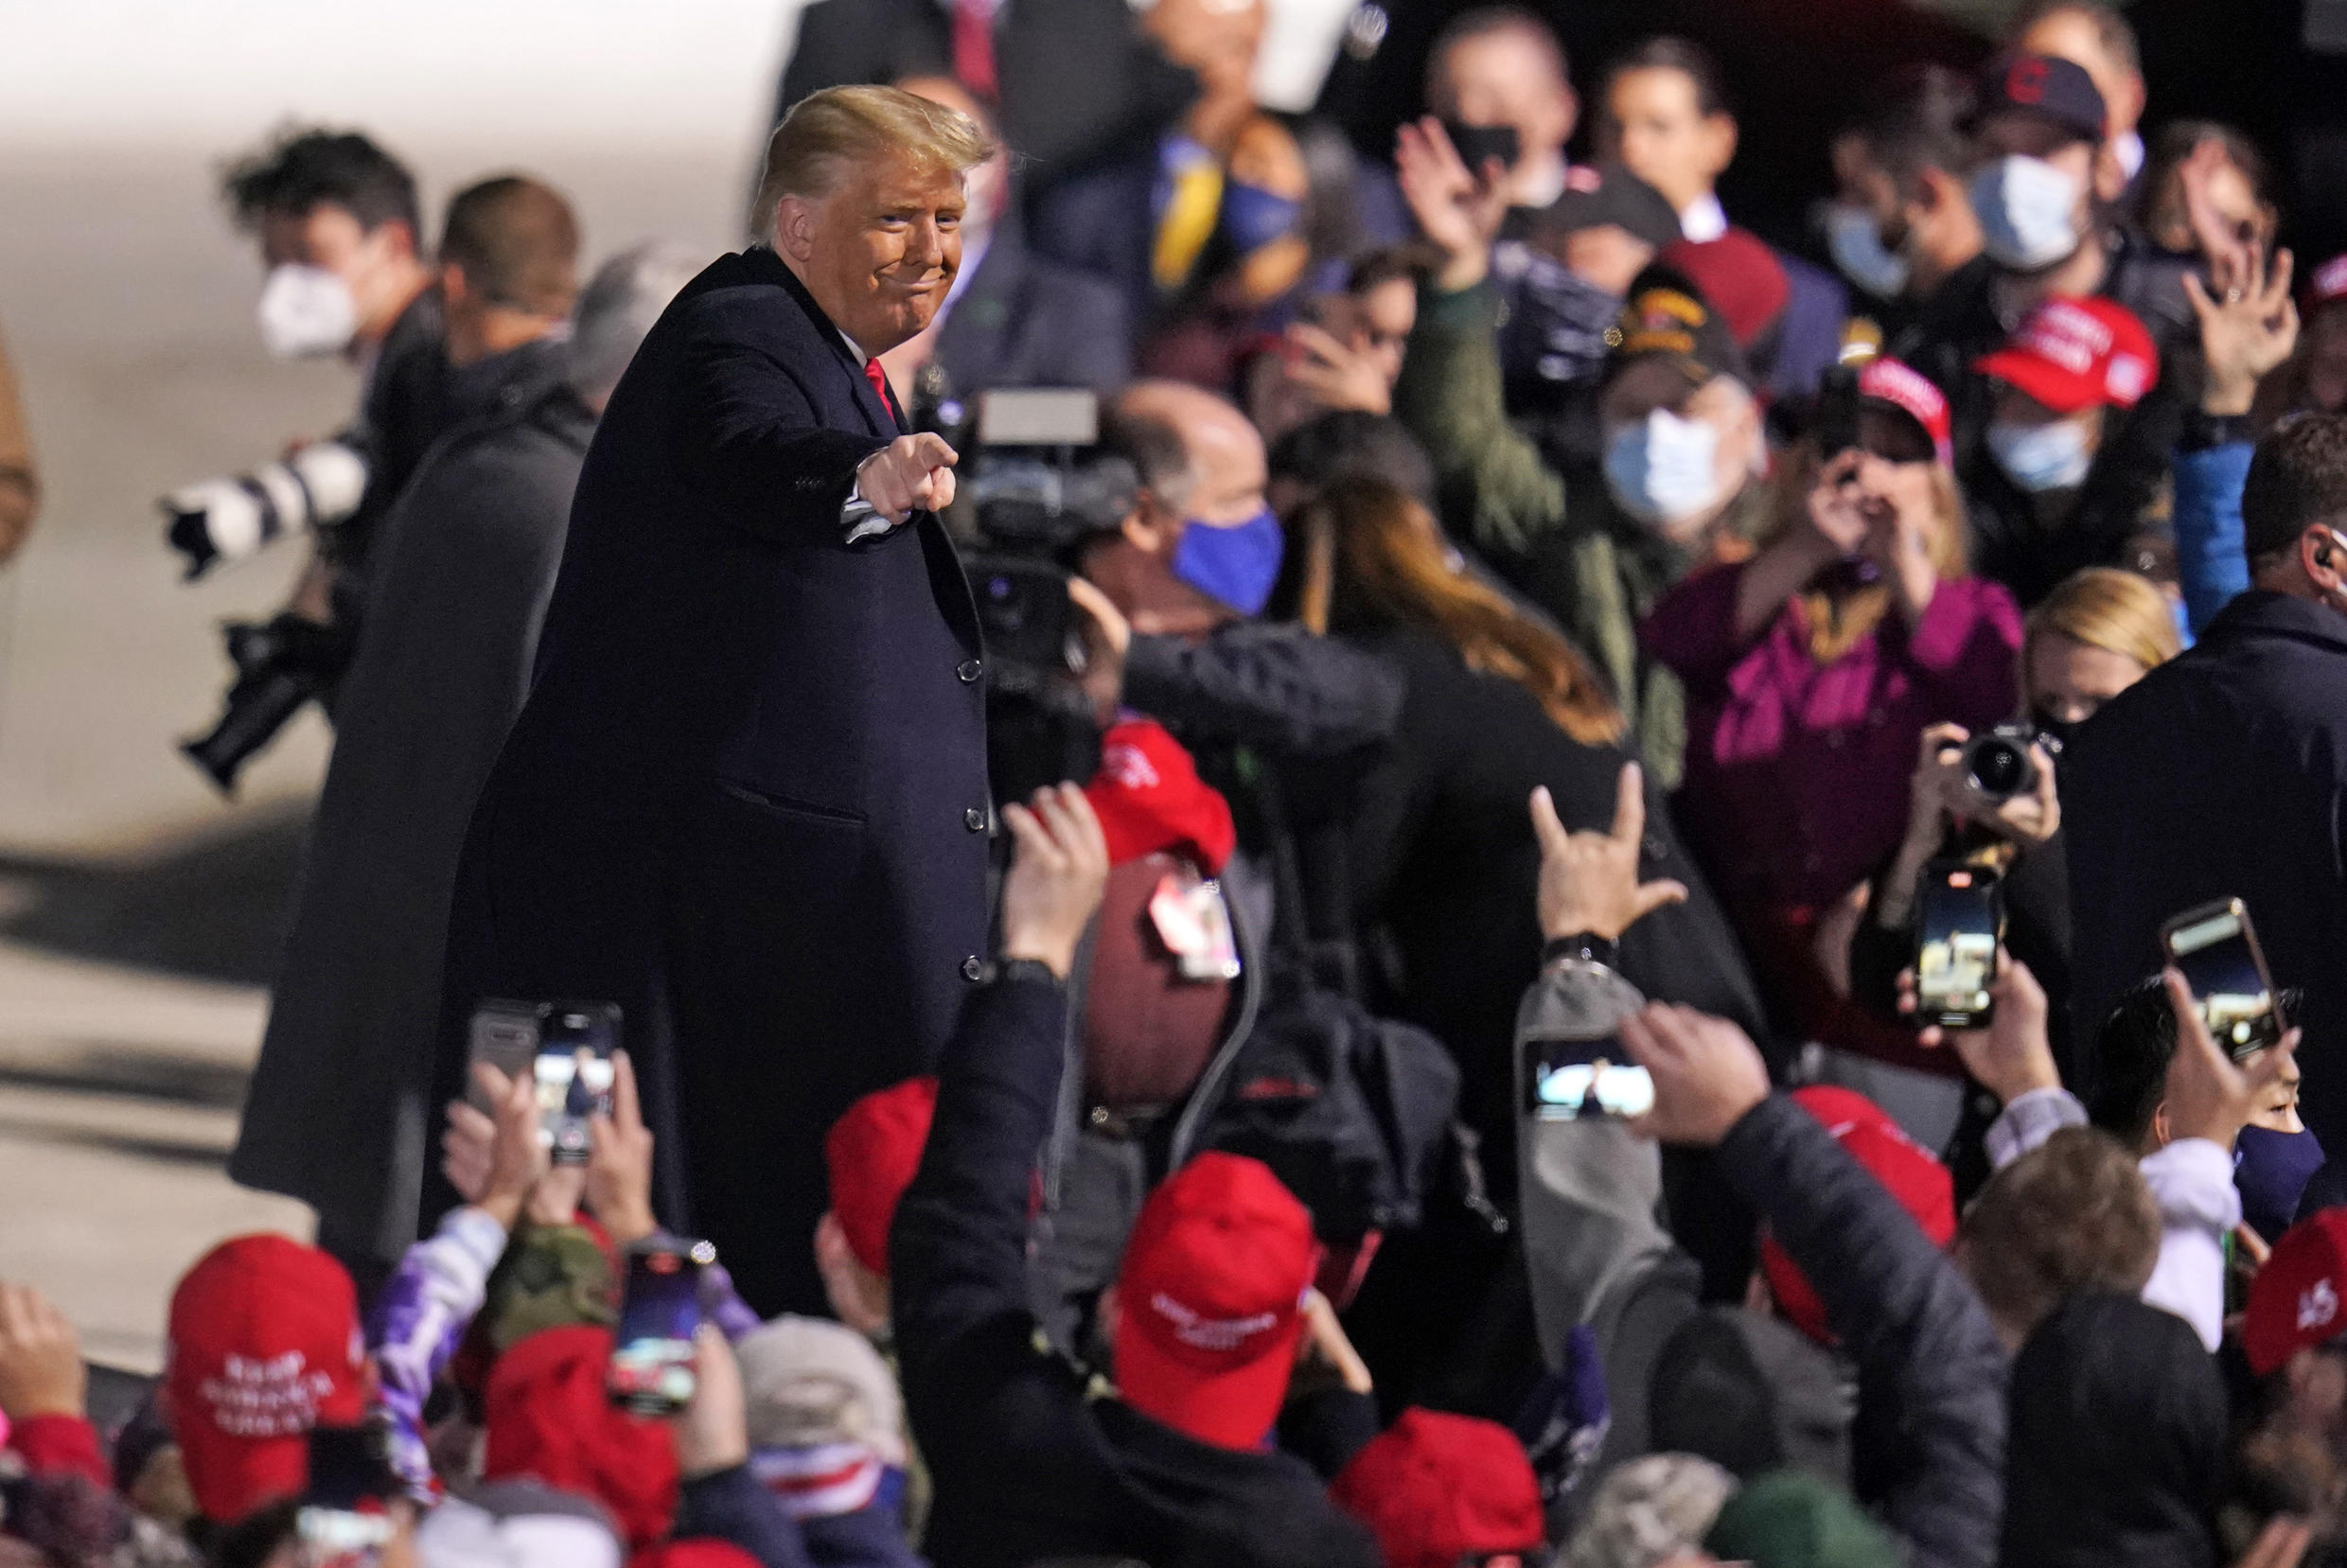 Supporters cheer as President Donald Trump departs following a campaign rally at Erie International Airport, Tom Ridge Field in Erie, Pa, Tuesday, Oct. 20, 2020.